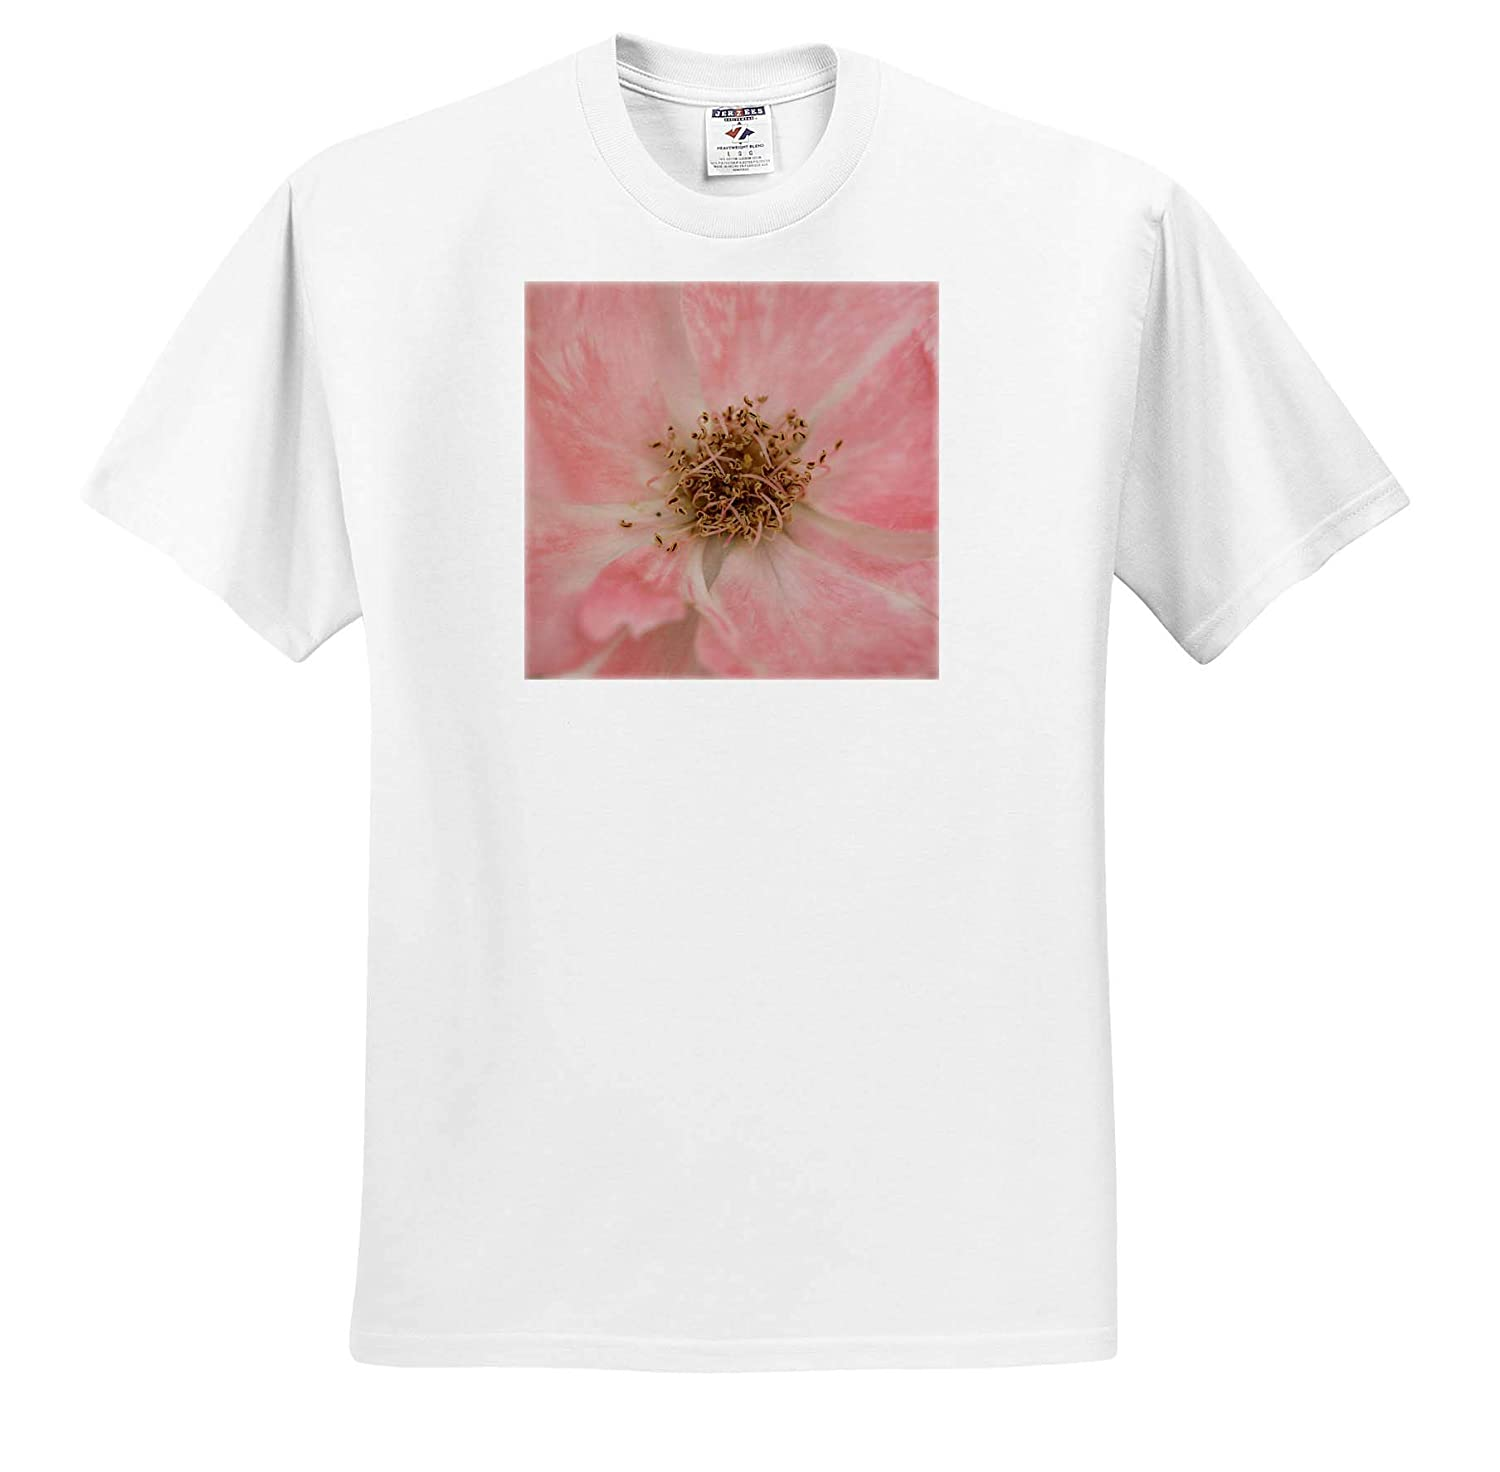 ts/_315581 Flowers 3dRose Stamp City Macro Photo of The Curly Stamens Among Pink Petals of a Rose - Adult T-Shirt XL